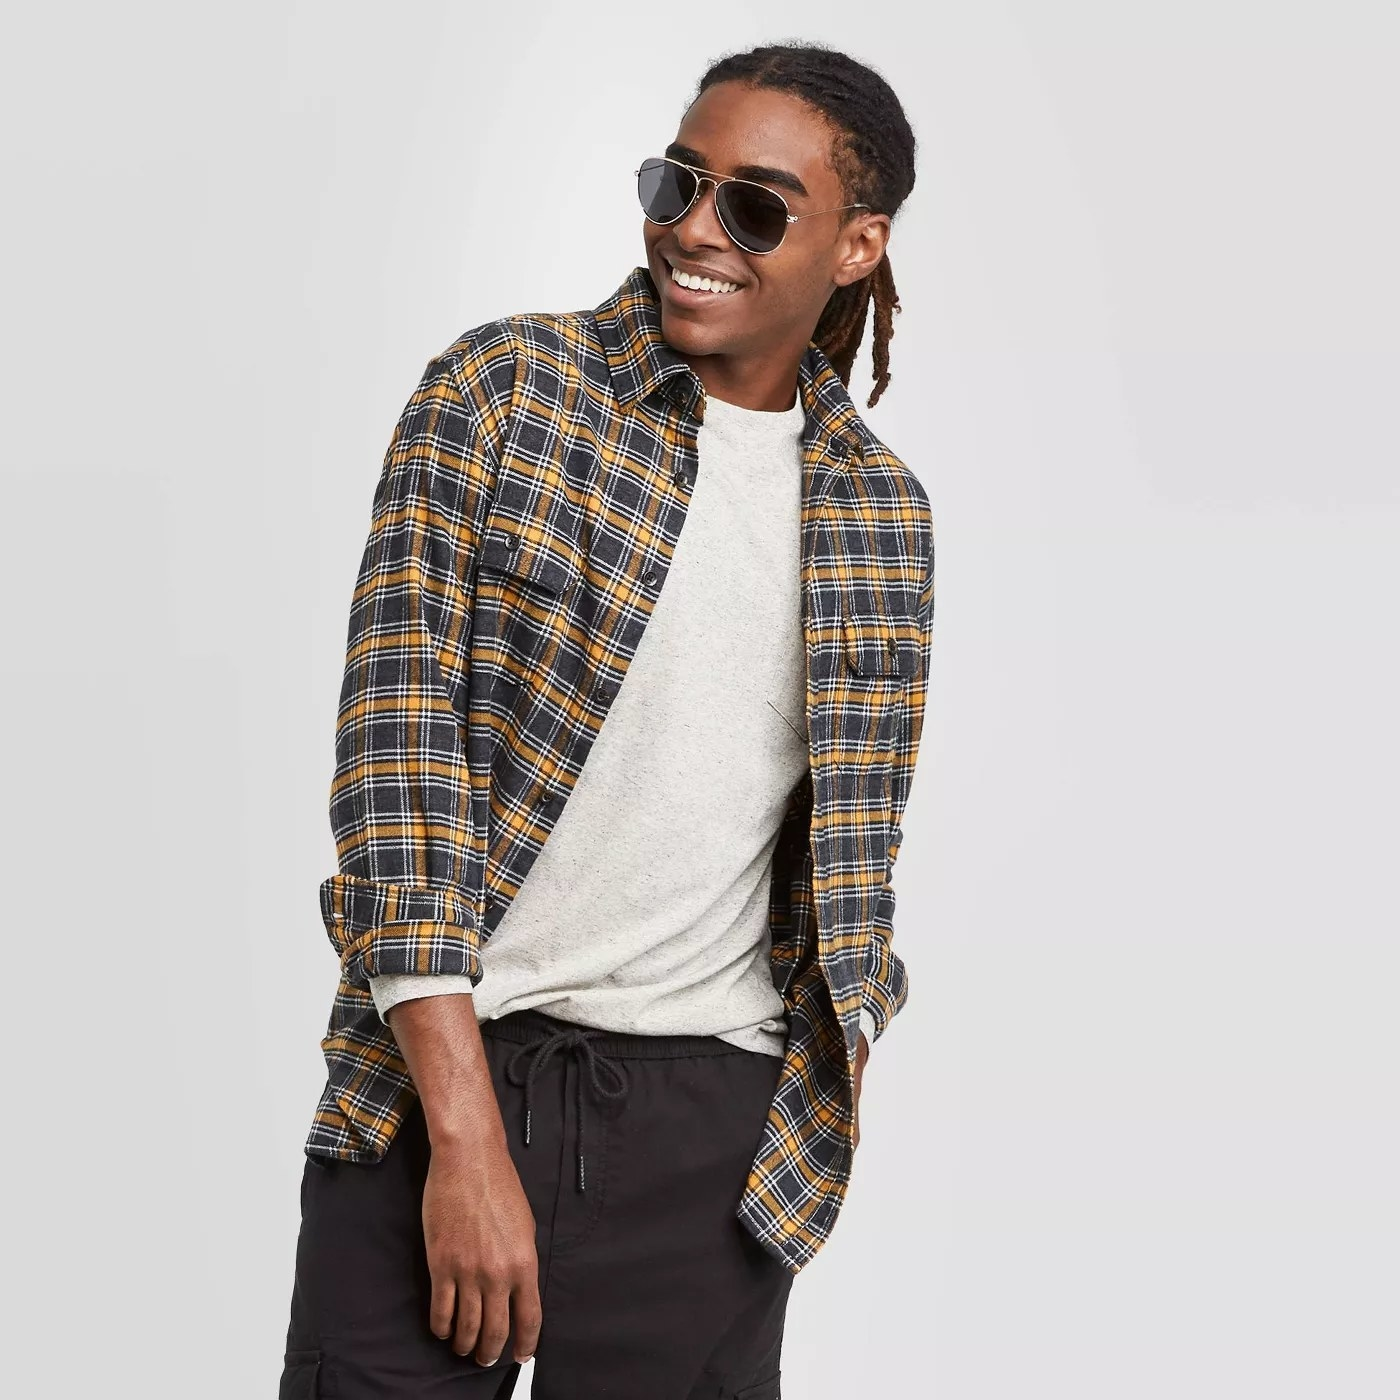 A model wearing the flannel in gold